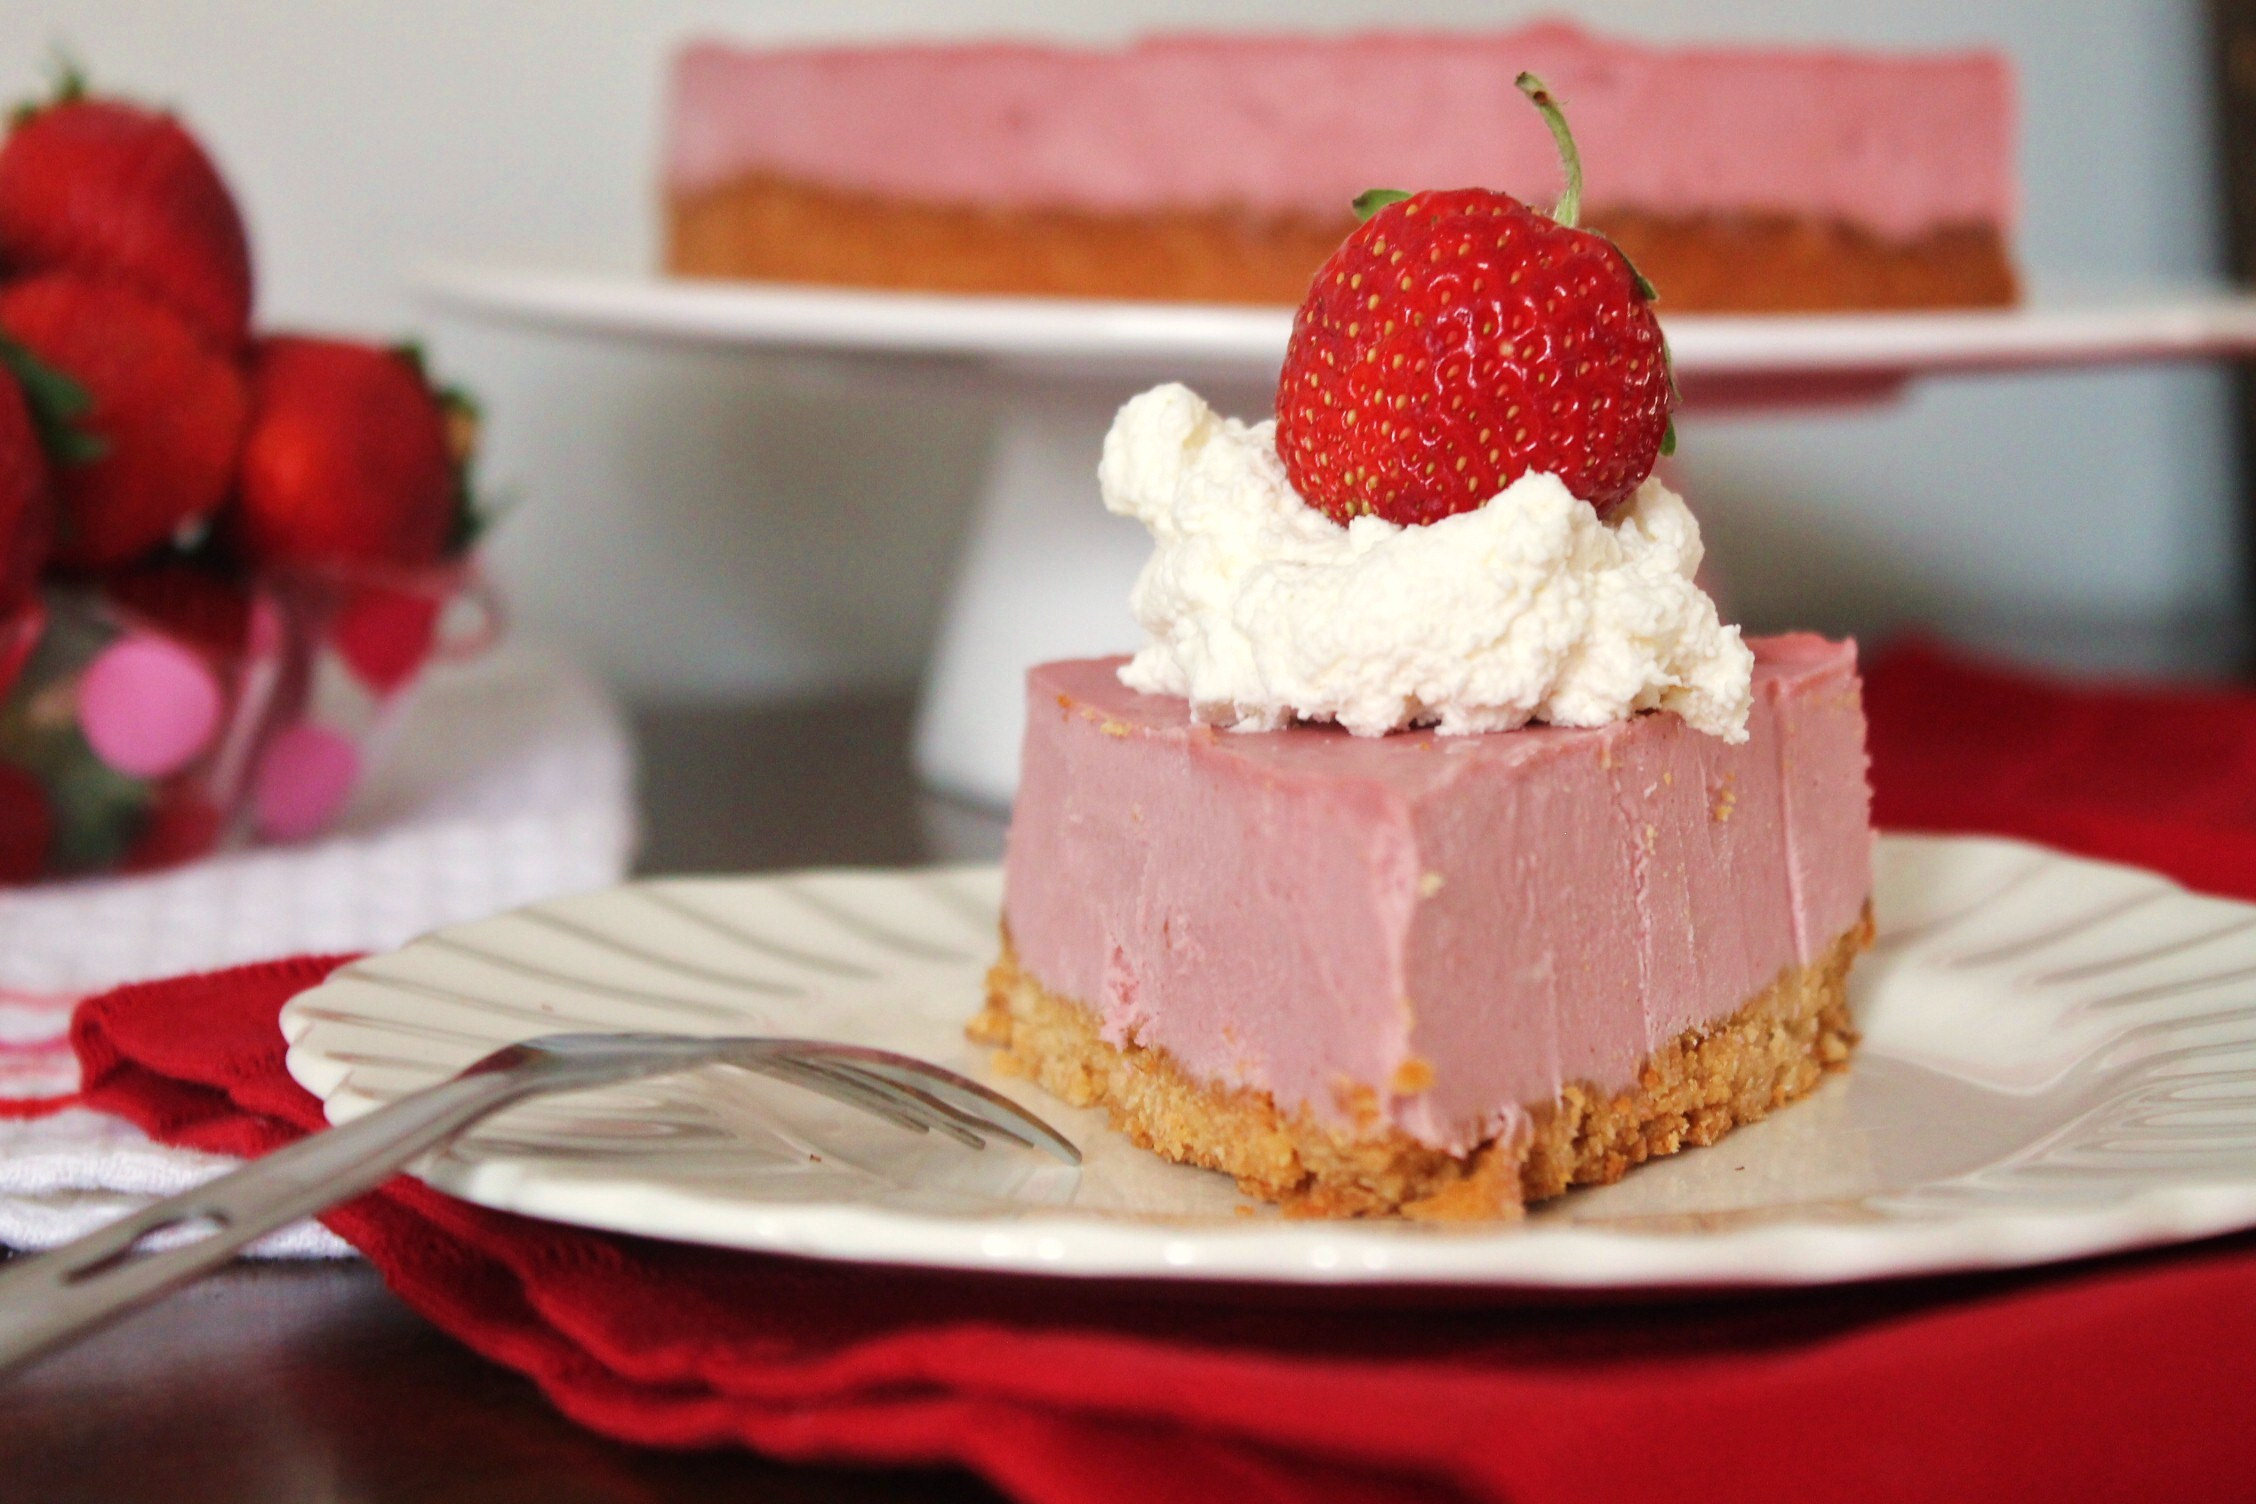 No Bake Strawberry Cheesecake | Gluten Free Fix